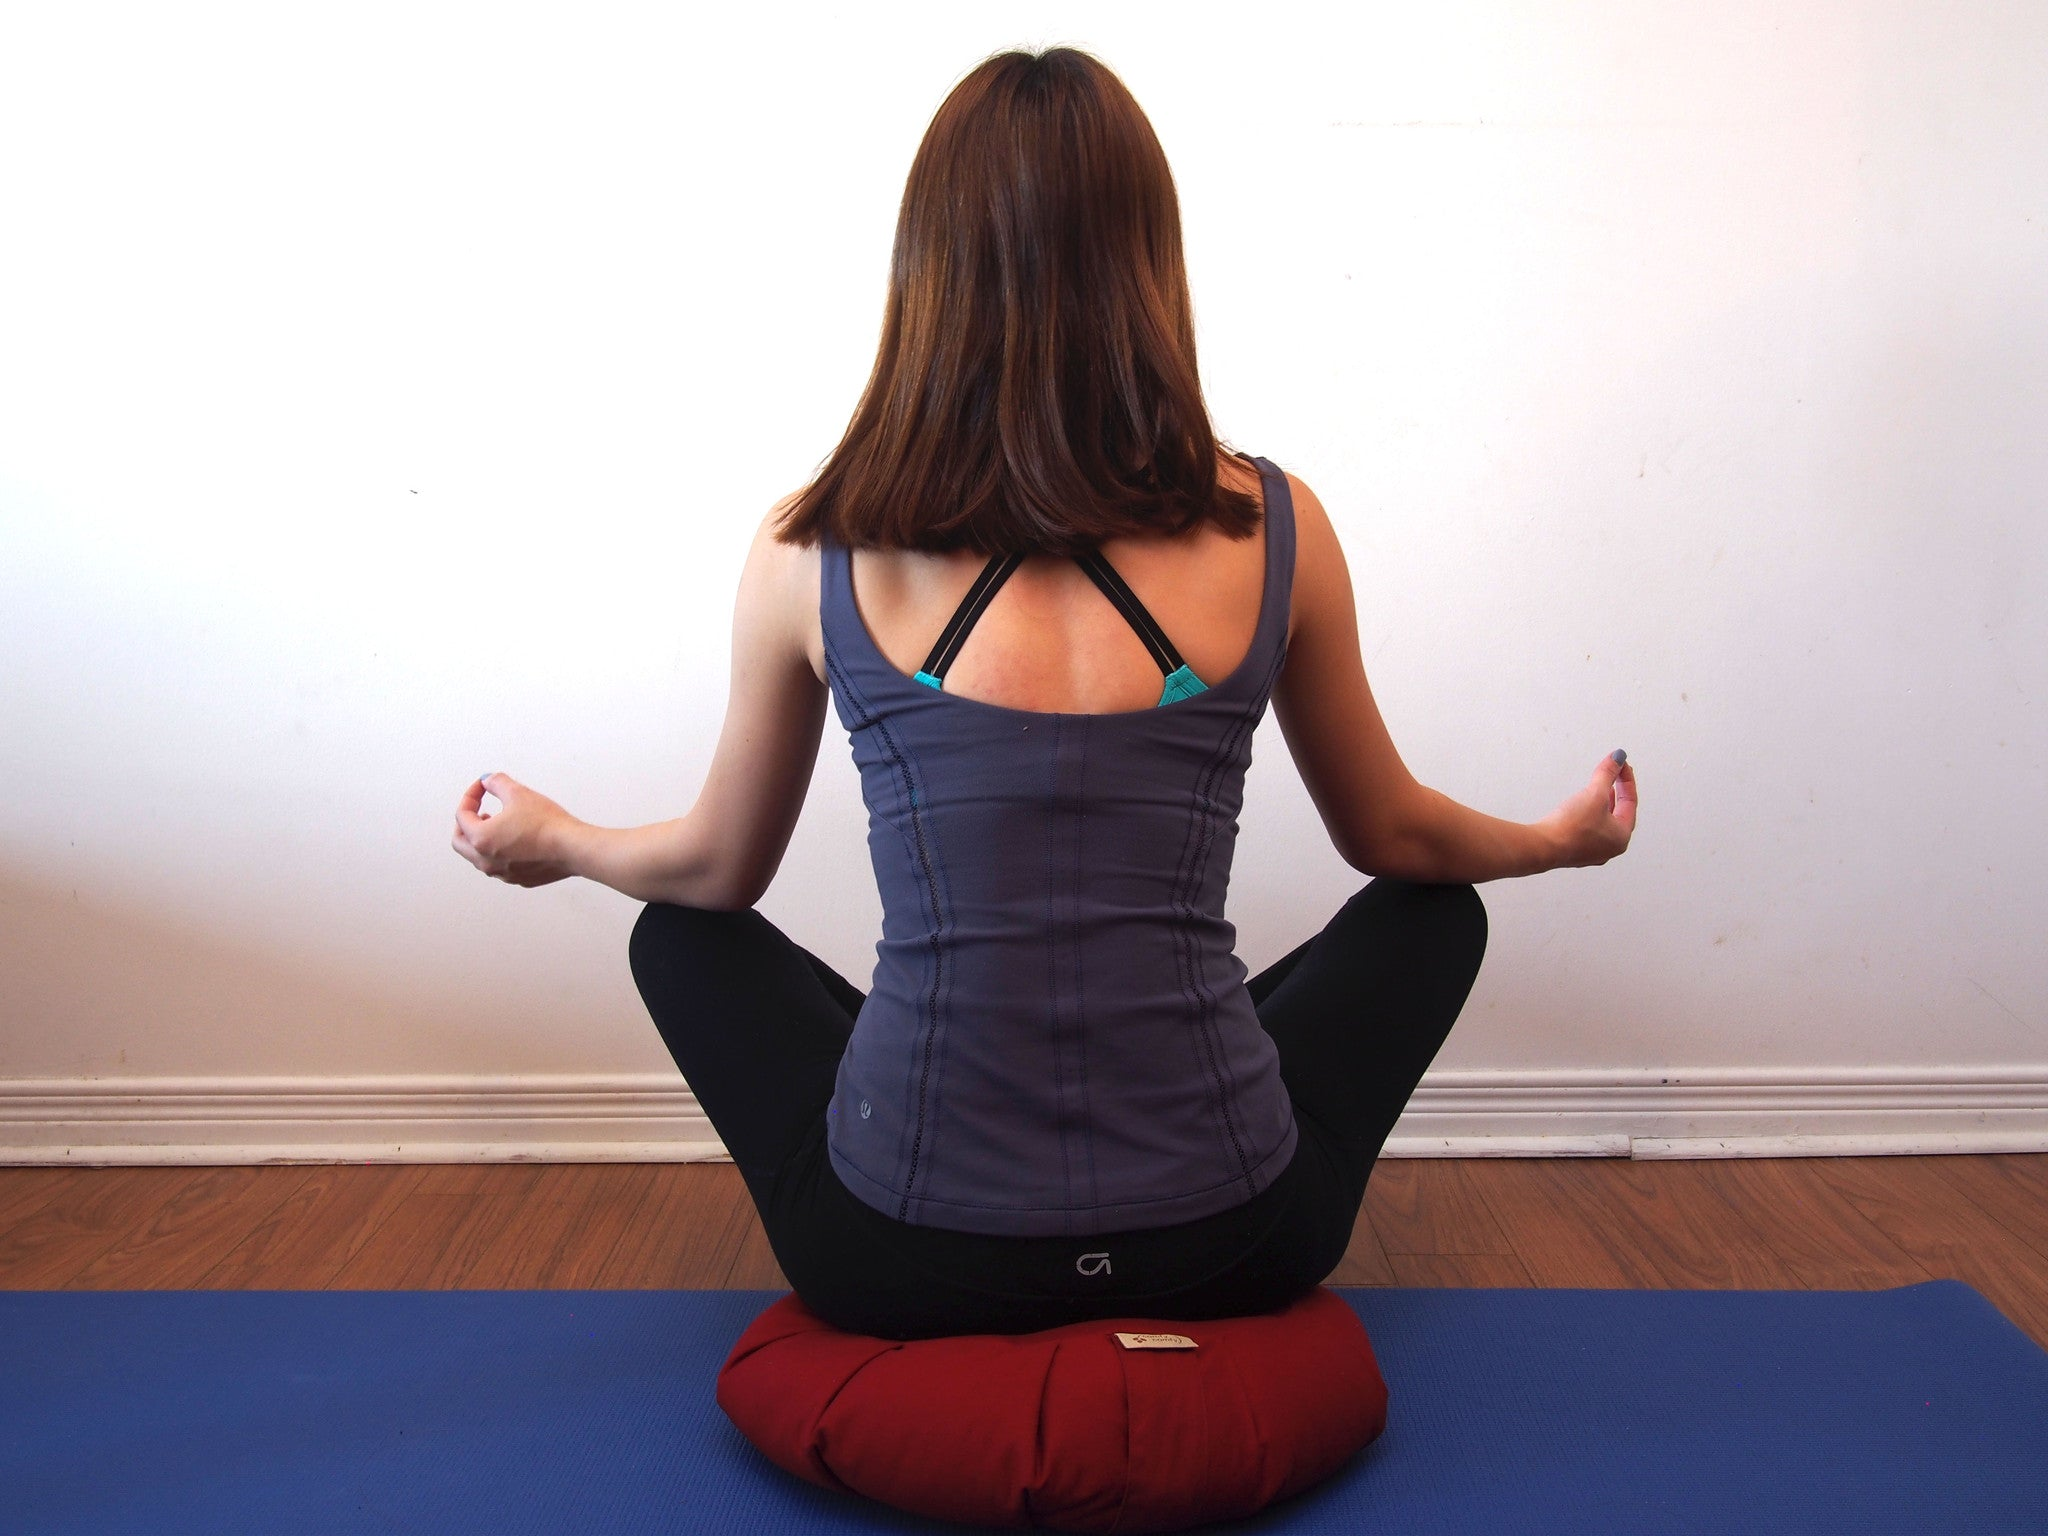 Meditating on Zafu Meditation Cushion Canada